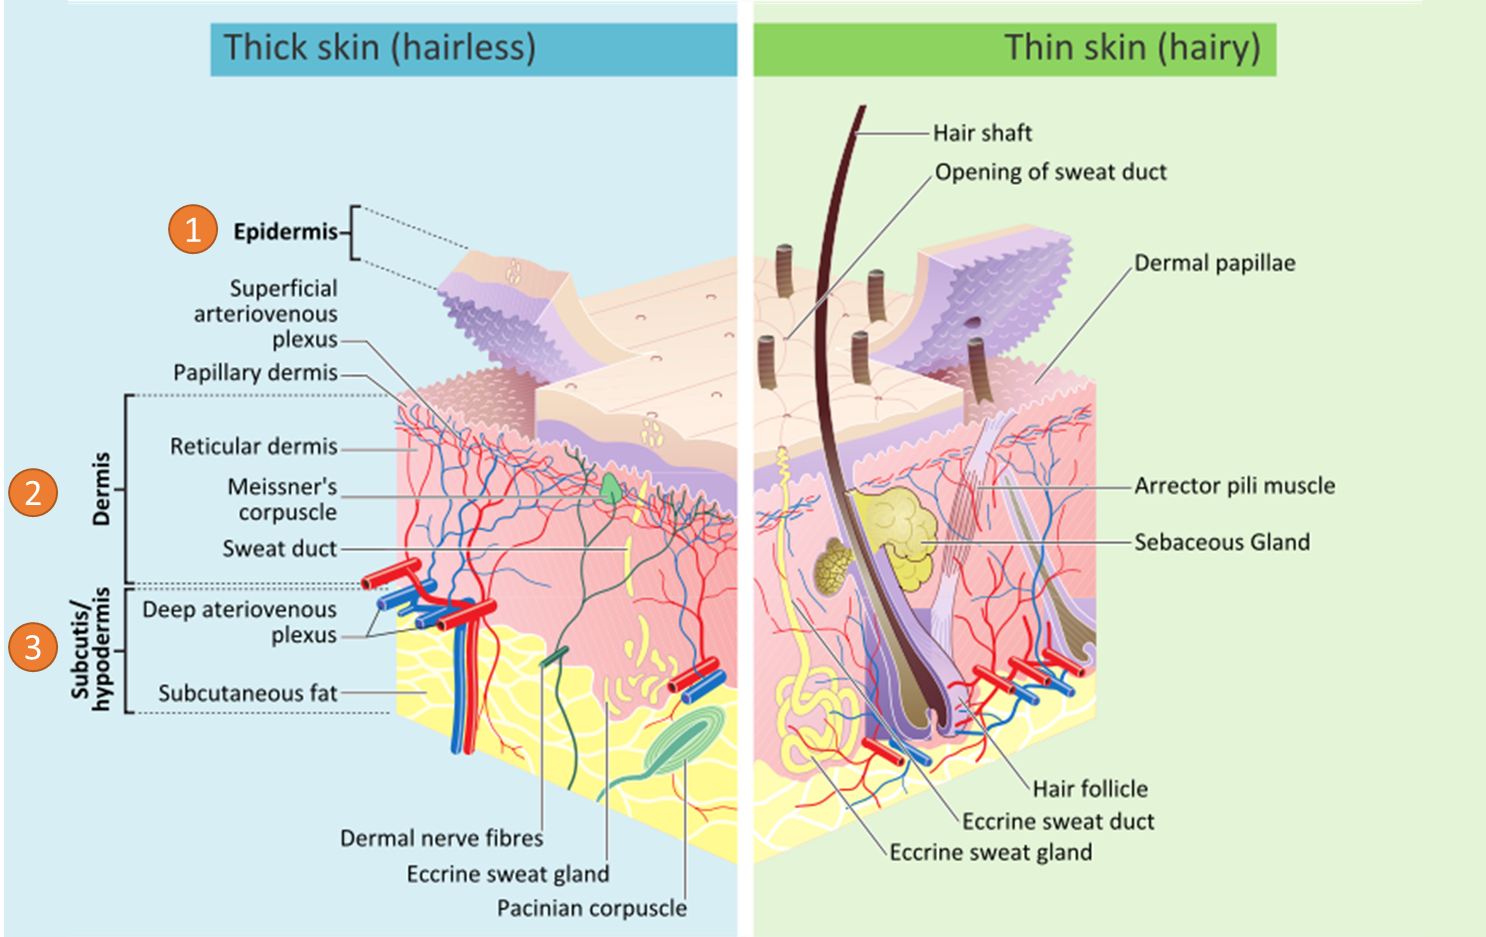 Anatomical graph that shows skin layers and their different components either in epidermis or dermis.